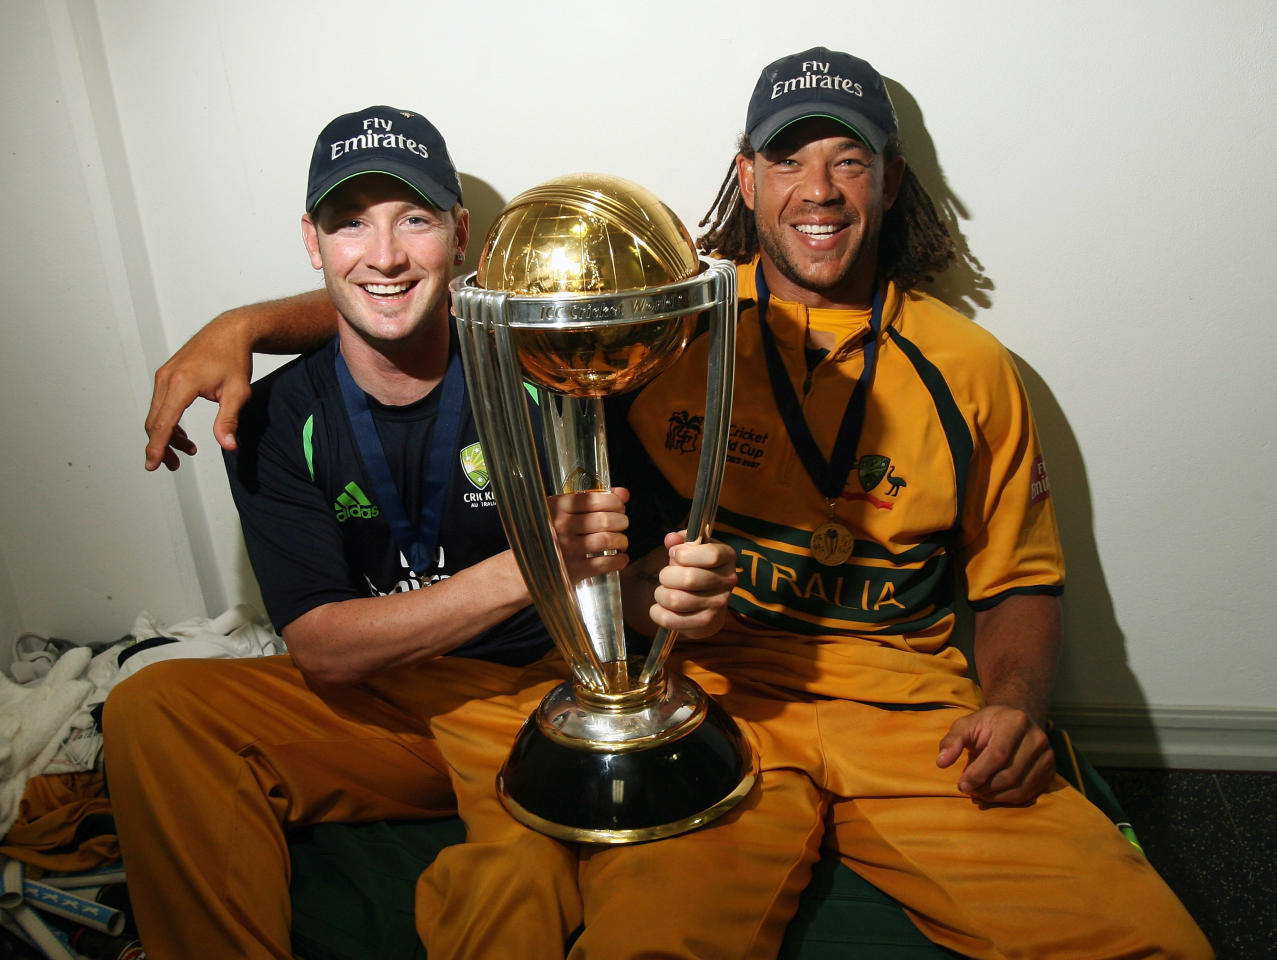 BRIDGETOWN, BARBADOS - APRIL 28:  Michael Clarke and Andrew Symonds of Australia pose with the ICC World Cup trophy in the changing rooms after the ICC Cricket World Cup Final between Australia and Sri Lanka at the Kensington Oval on April 28, 2007 in Bridgetown, Barbados.  (Photo by Hamish Blair/Getty Images)